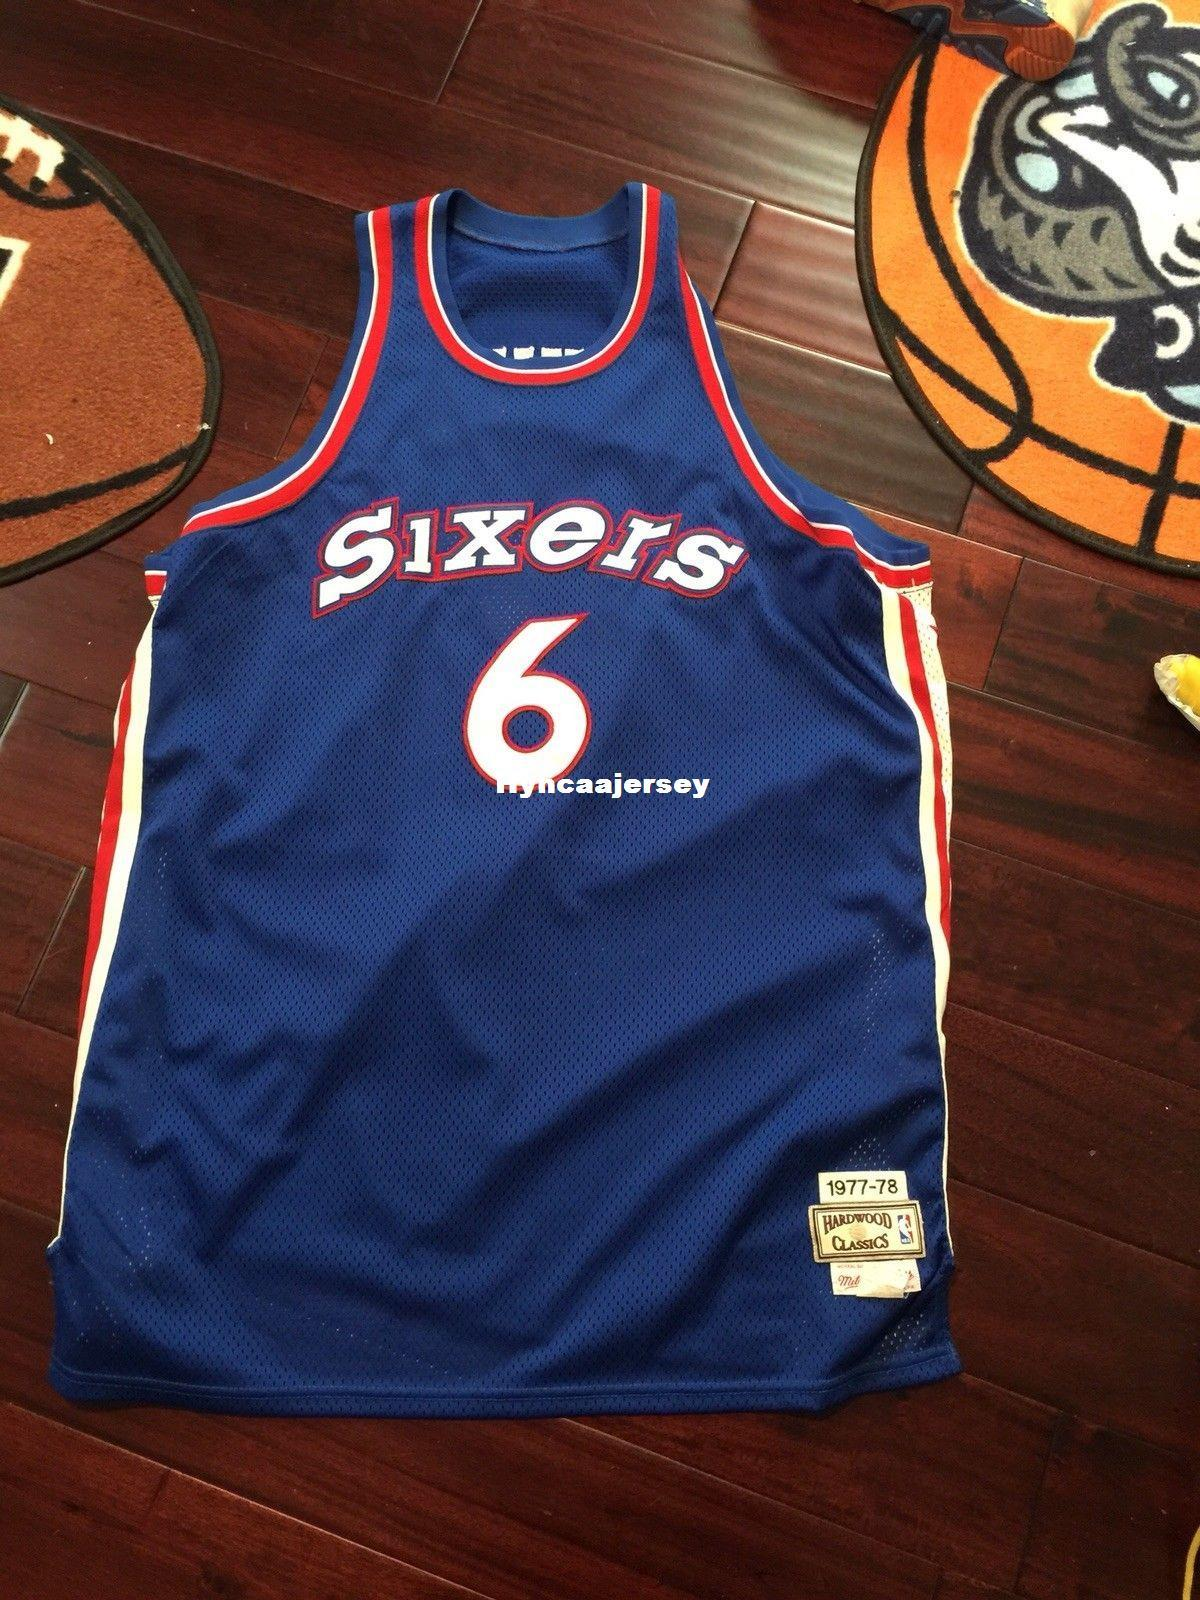 824d4f7c6 2019 Mitchell And Ness Sewn  6 Julius Erving Dr. J Jersey Mens Vest Size XS  6XL Stitched Basketball Jerseys Ncaa College From Hyncaajersey